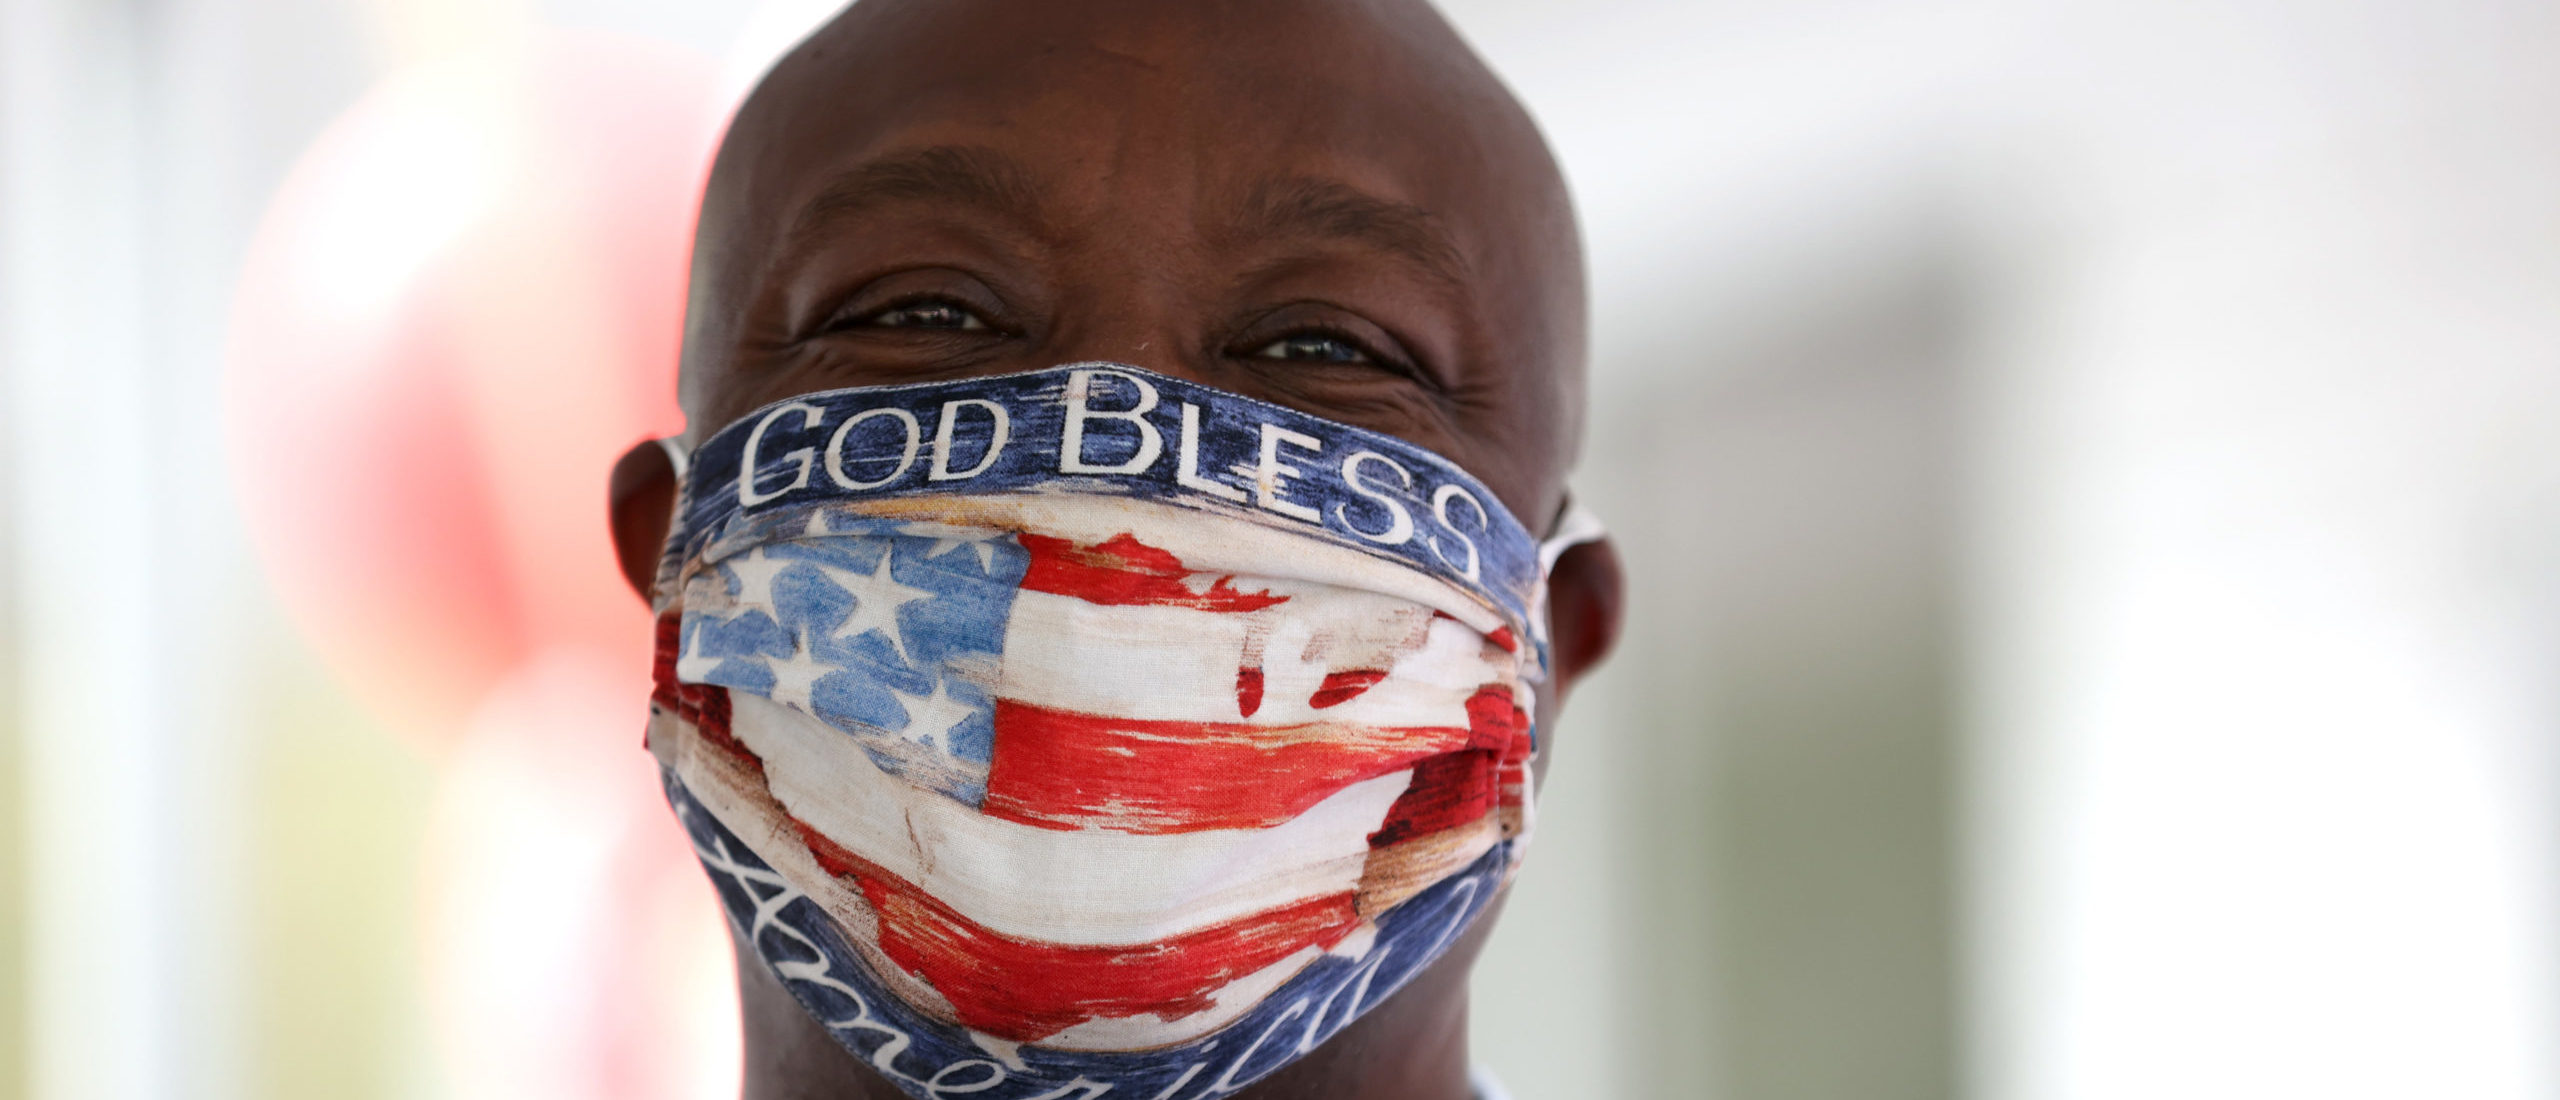 """DOUGLASVILLE, GEORGIA - OCTOBER 28: U.S. Sen. Tim Scott (R-SC) wears a face mask that reads """"God Bless America"""" during a campaign event with U.S. Sen. Kelly Loeffler (R-GA) at Metro Garage Door on October 28, 2020 in Douglasville, Georgia. (Photo by Justin Sullivan/Getty Images)"""